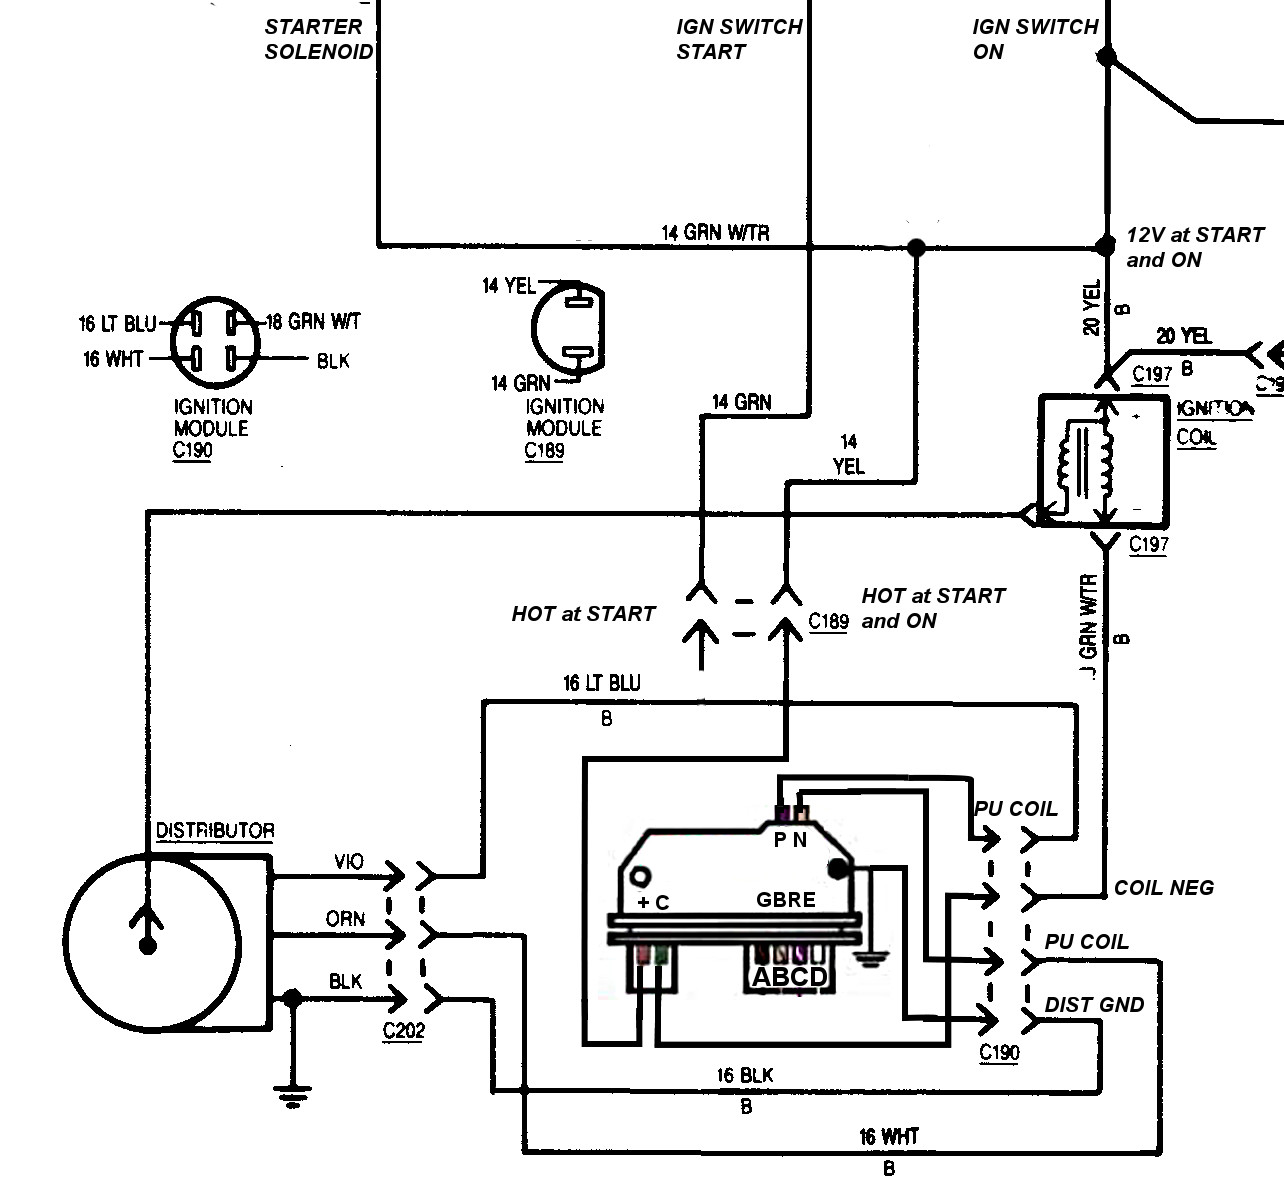 wiring diagram for ignition control module in 1996 ford Ignition Module Wire  Harness Ford Ignition System